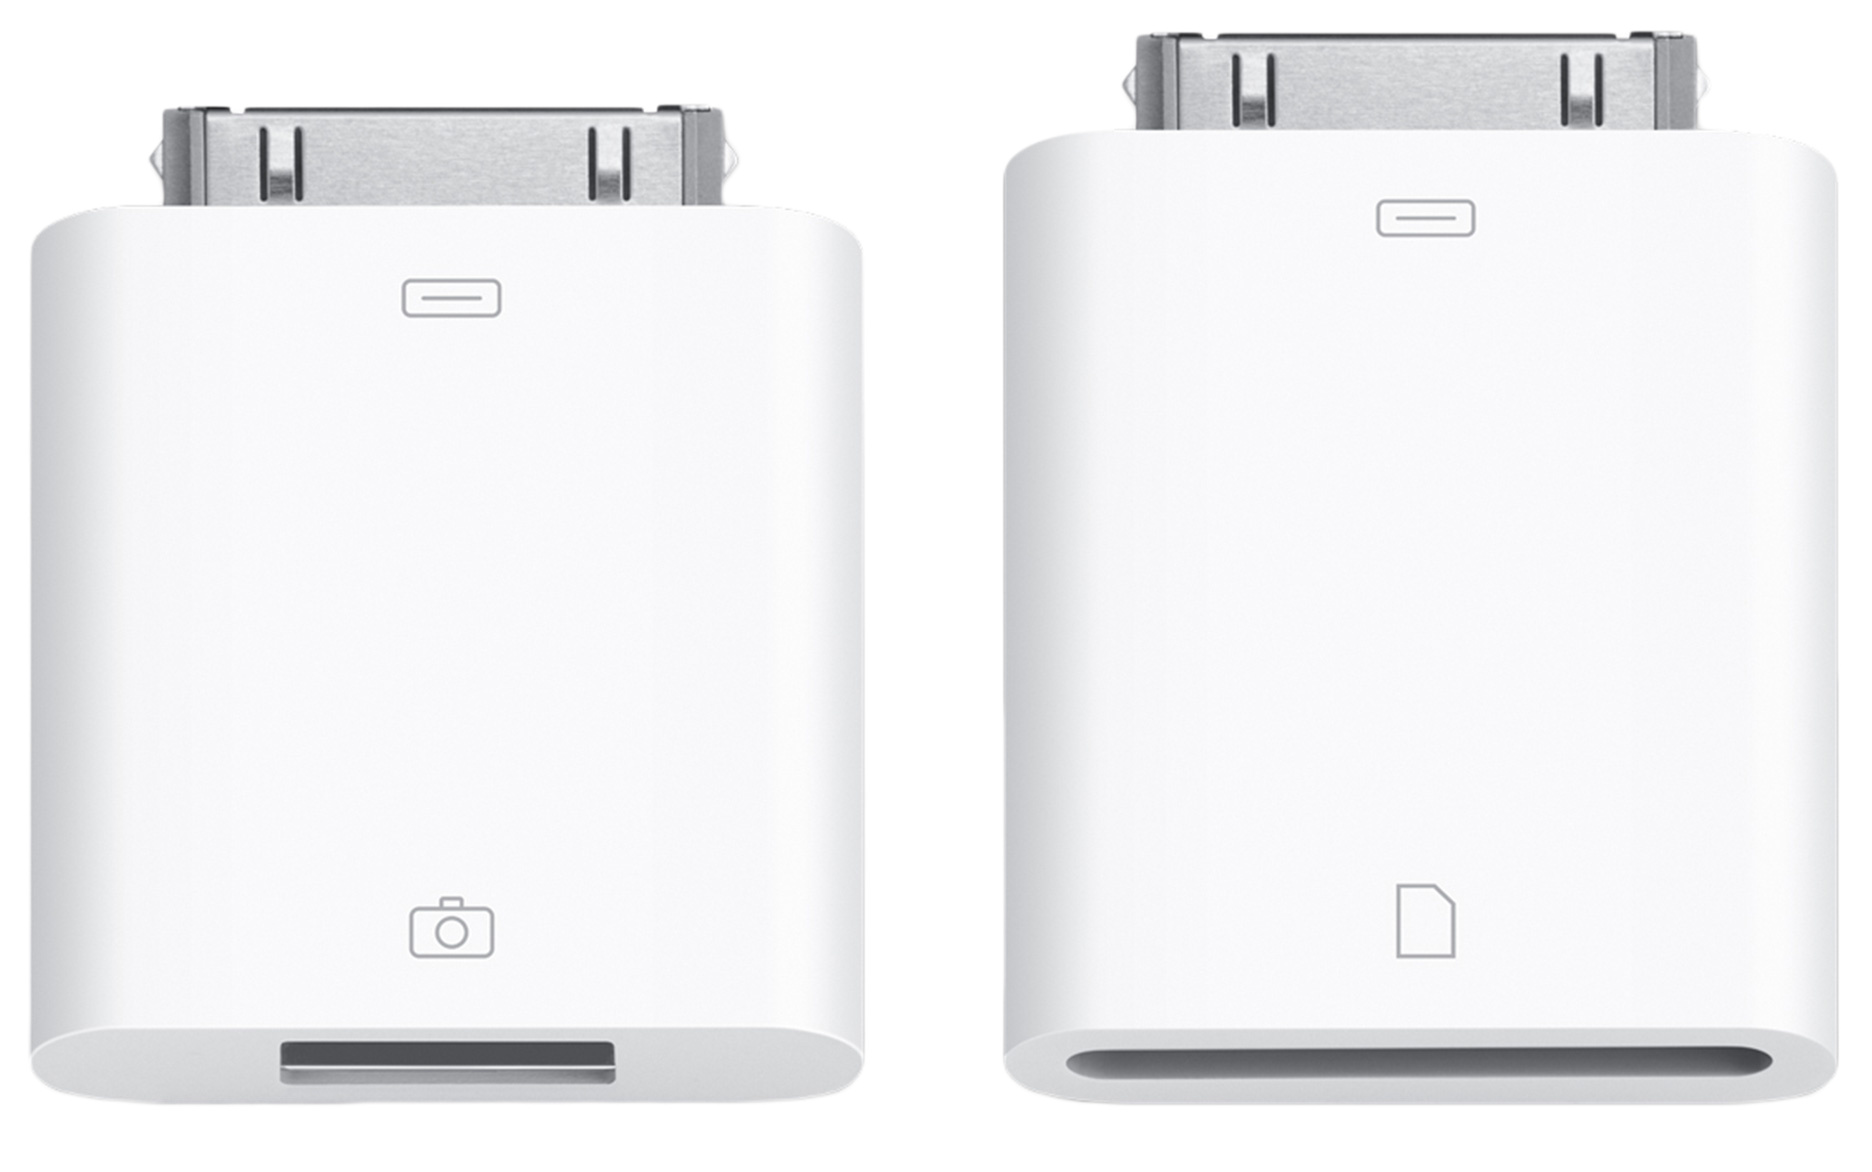 White iPad  USB Adaptor Connection Port Kit for memory card or keyboard